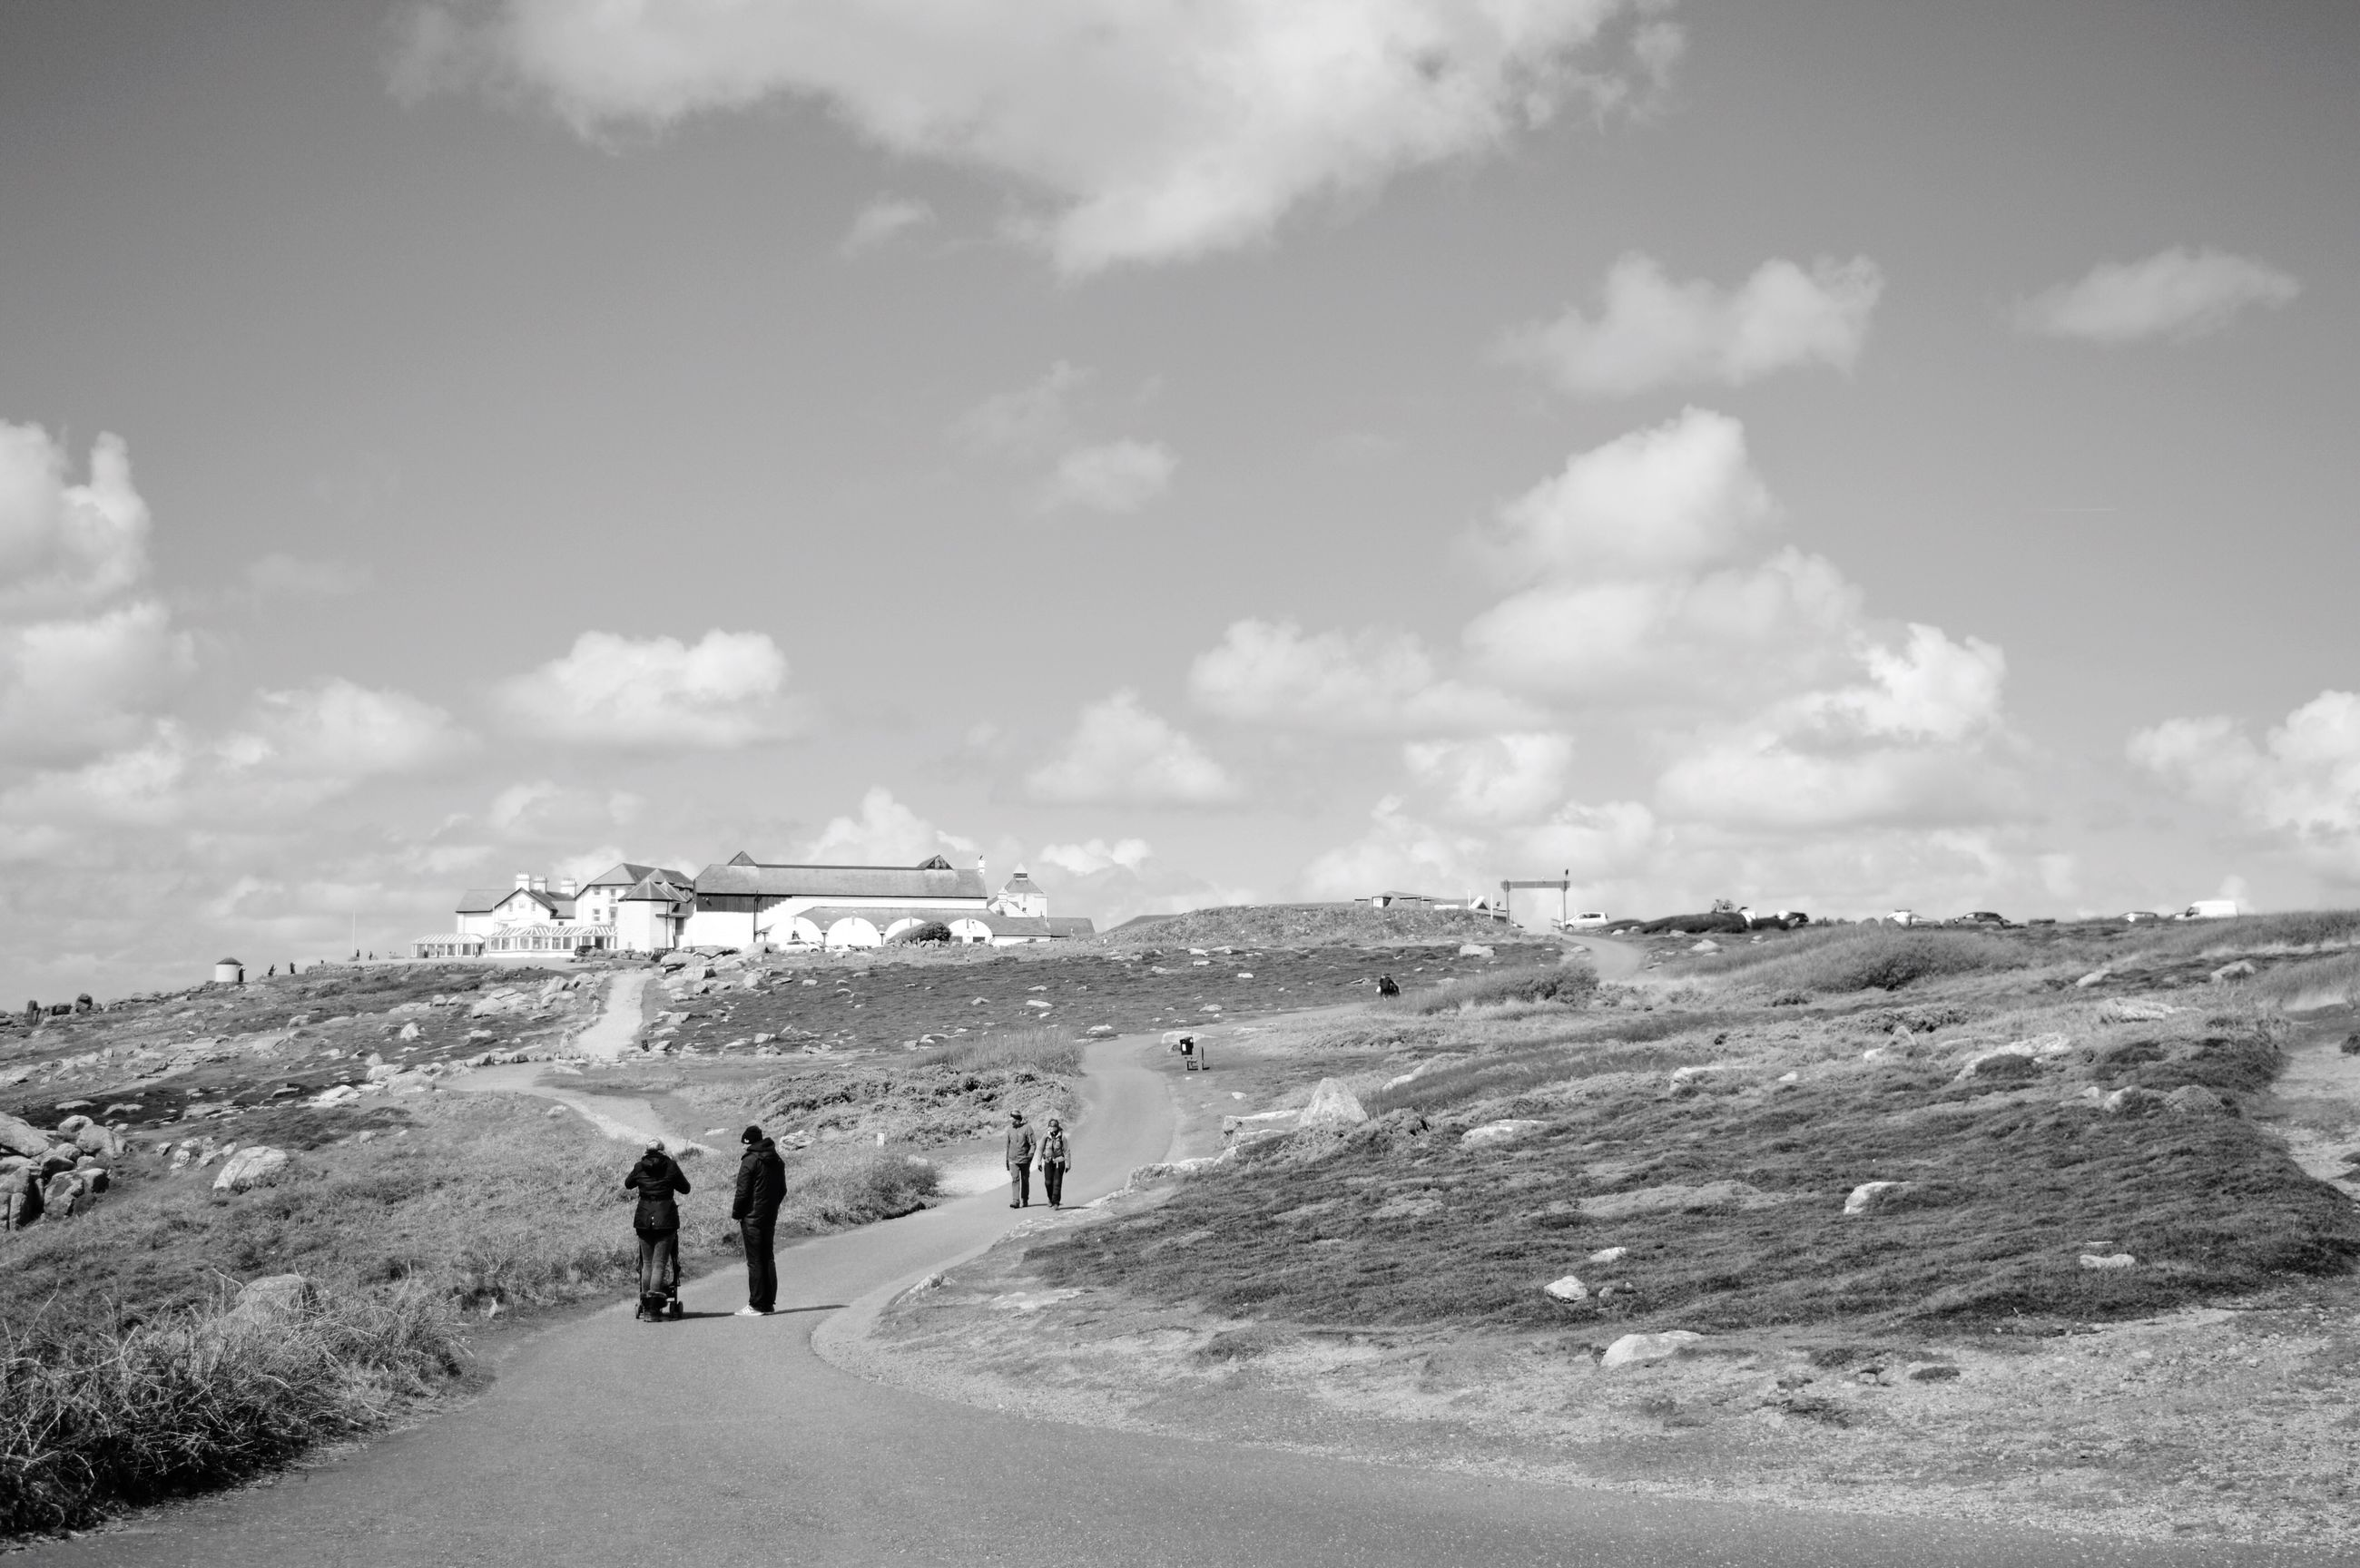 sky, men, lifestyles, leisure activity, large group of people, walking, person, cloud - sky, tourist, mountain, nature, mixed age range, medium group of people, vacations, day, group of people, beach, cloud, scenics